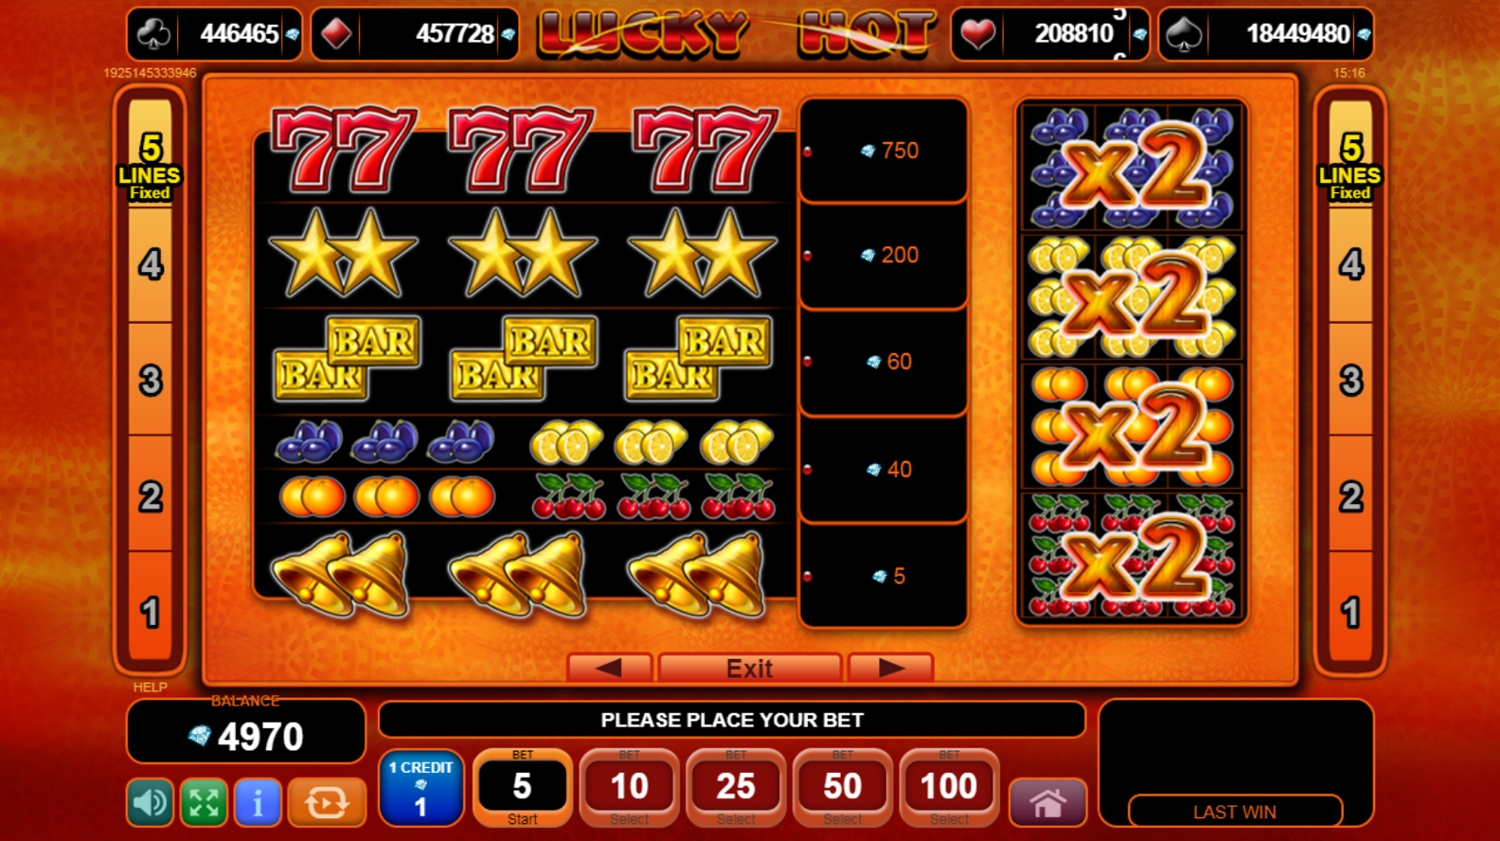 Lucky Hot slot paytable